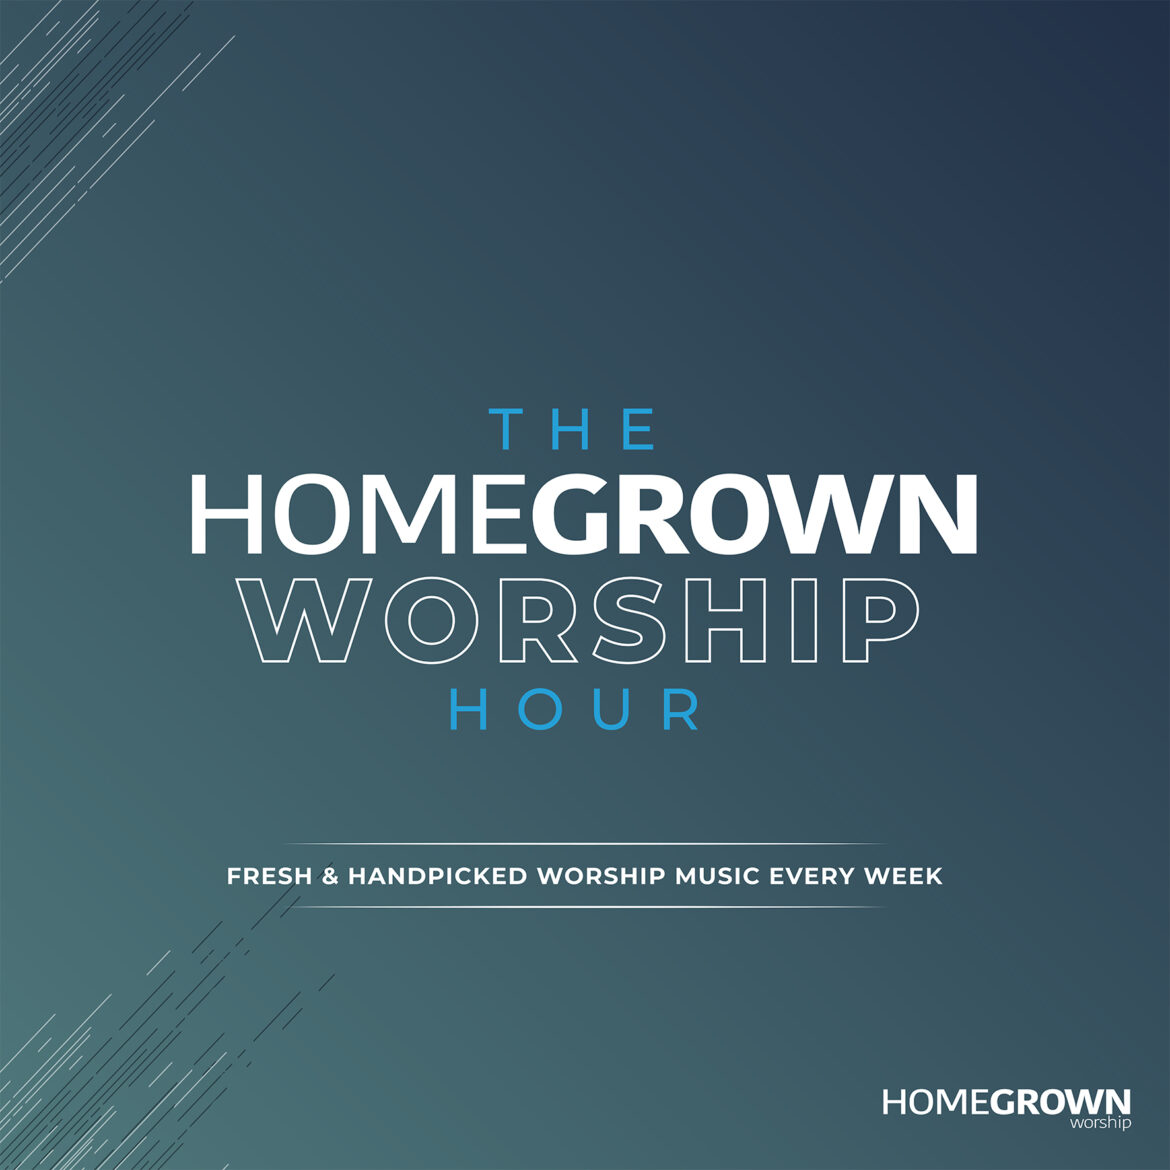 The Homegrown Worship Hour